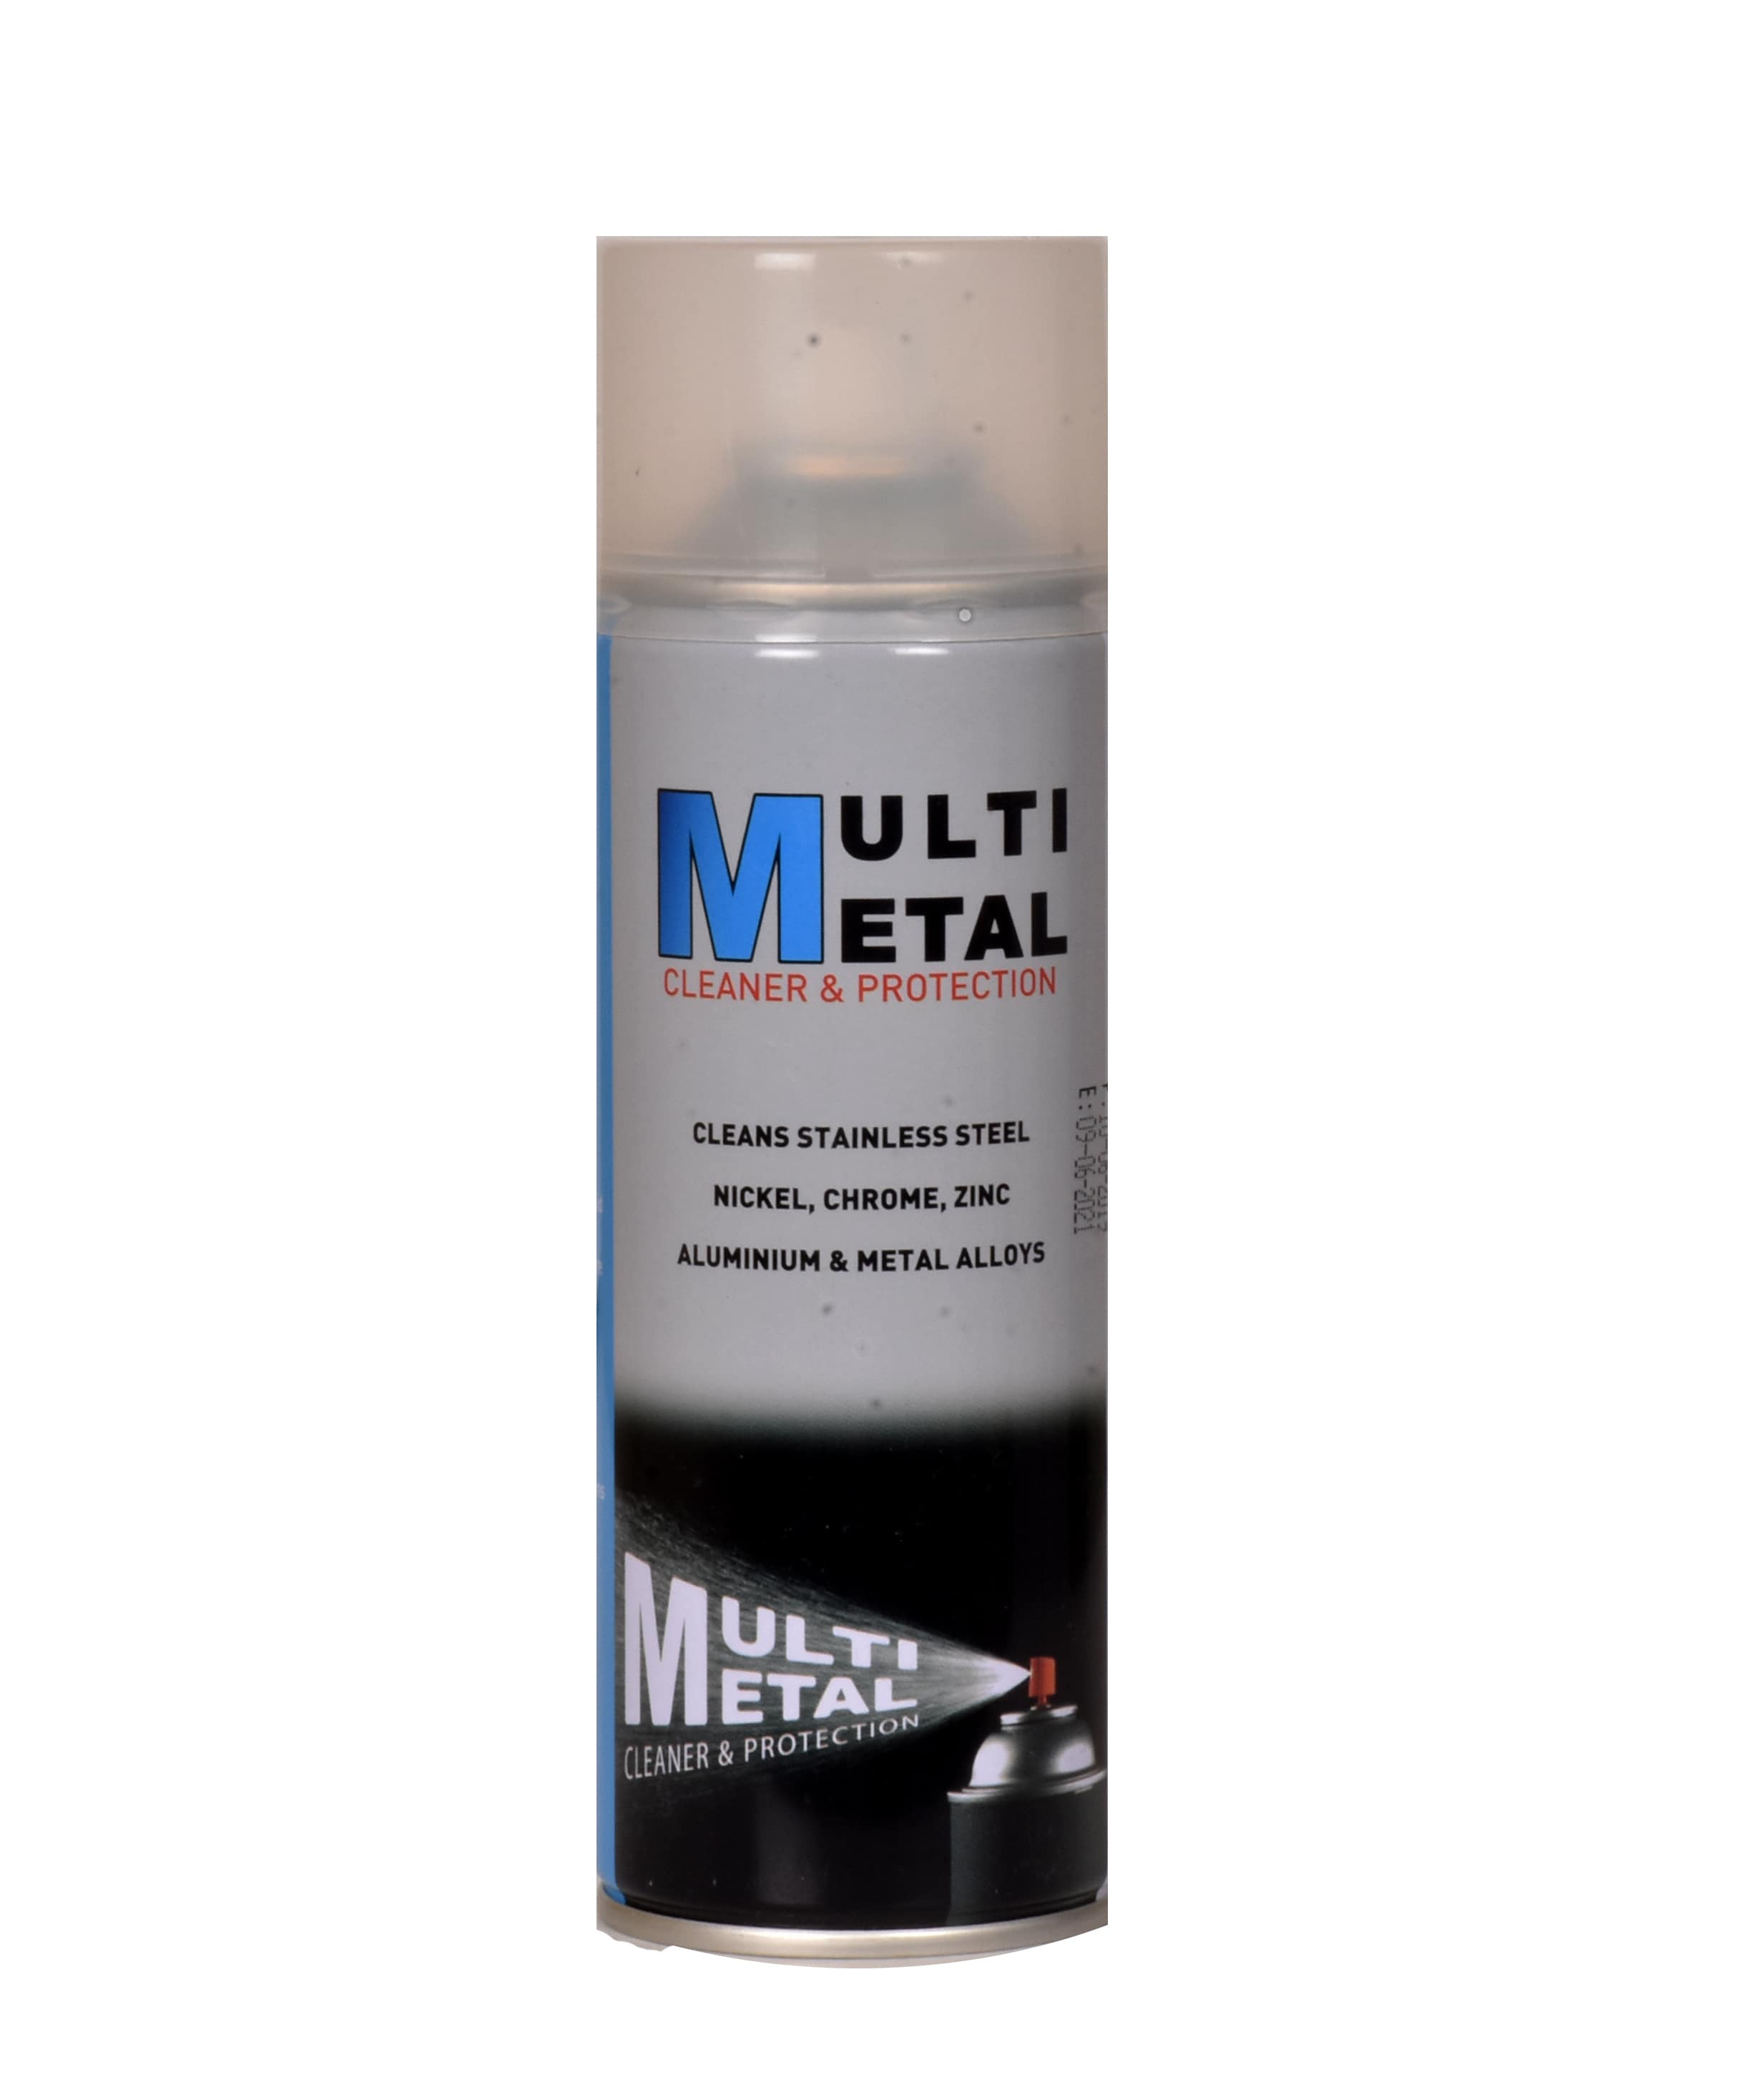 Multimetal Cleaner